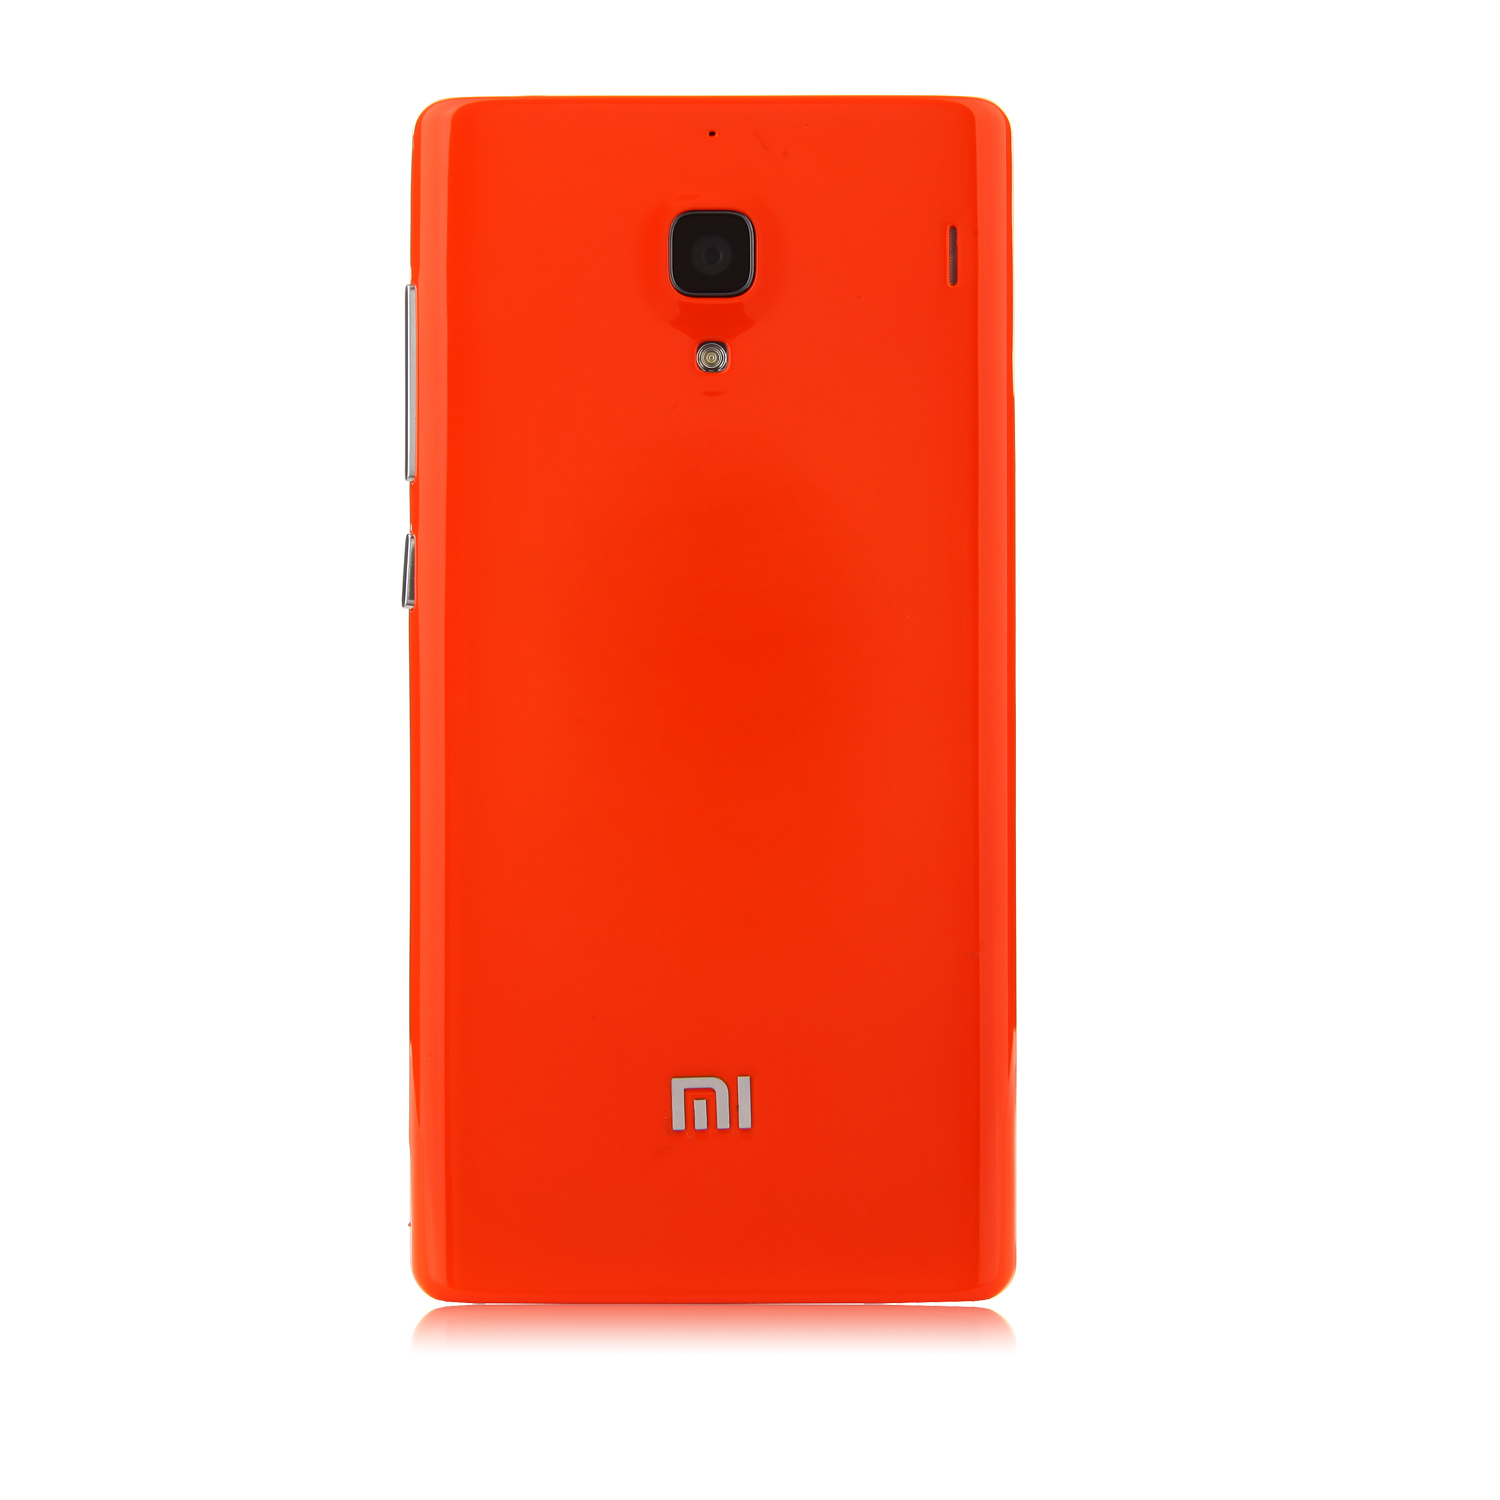 Replacement Battery Cover Back Case for XIAOMI Redmi 1S Smartphone Orange